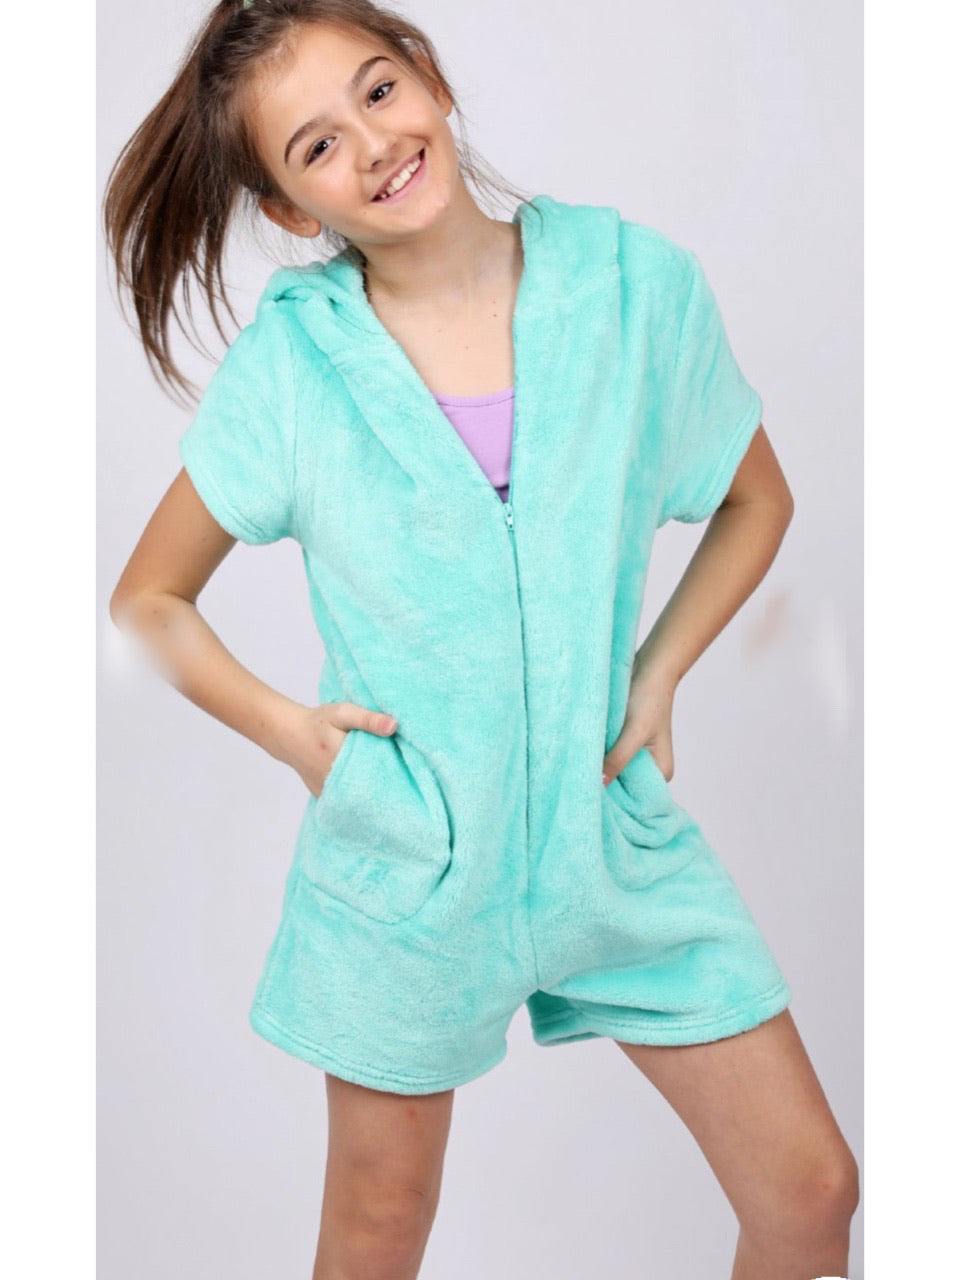 CANDY PINK FLEECE ROMPER - MINT